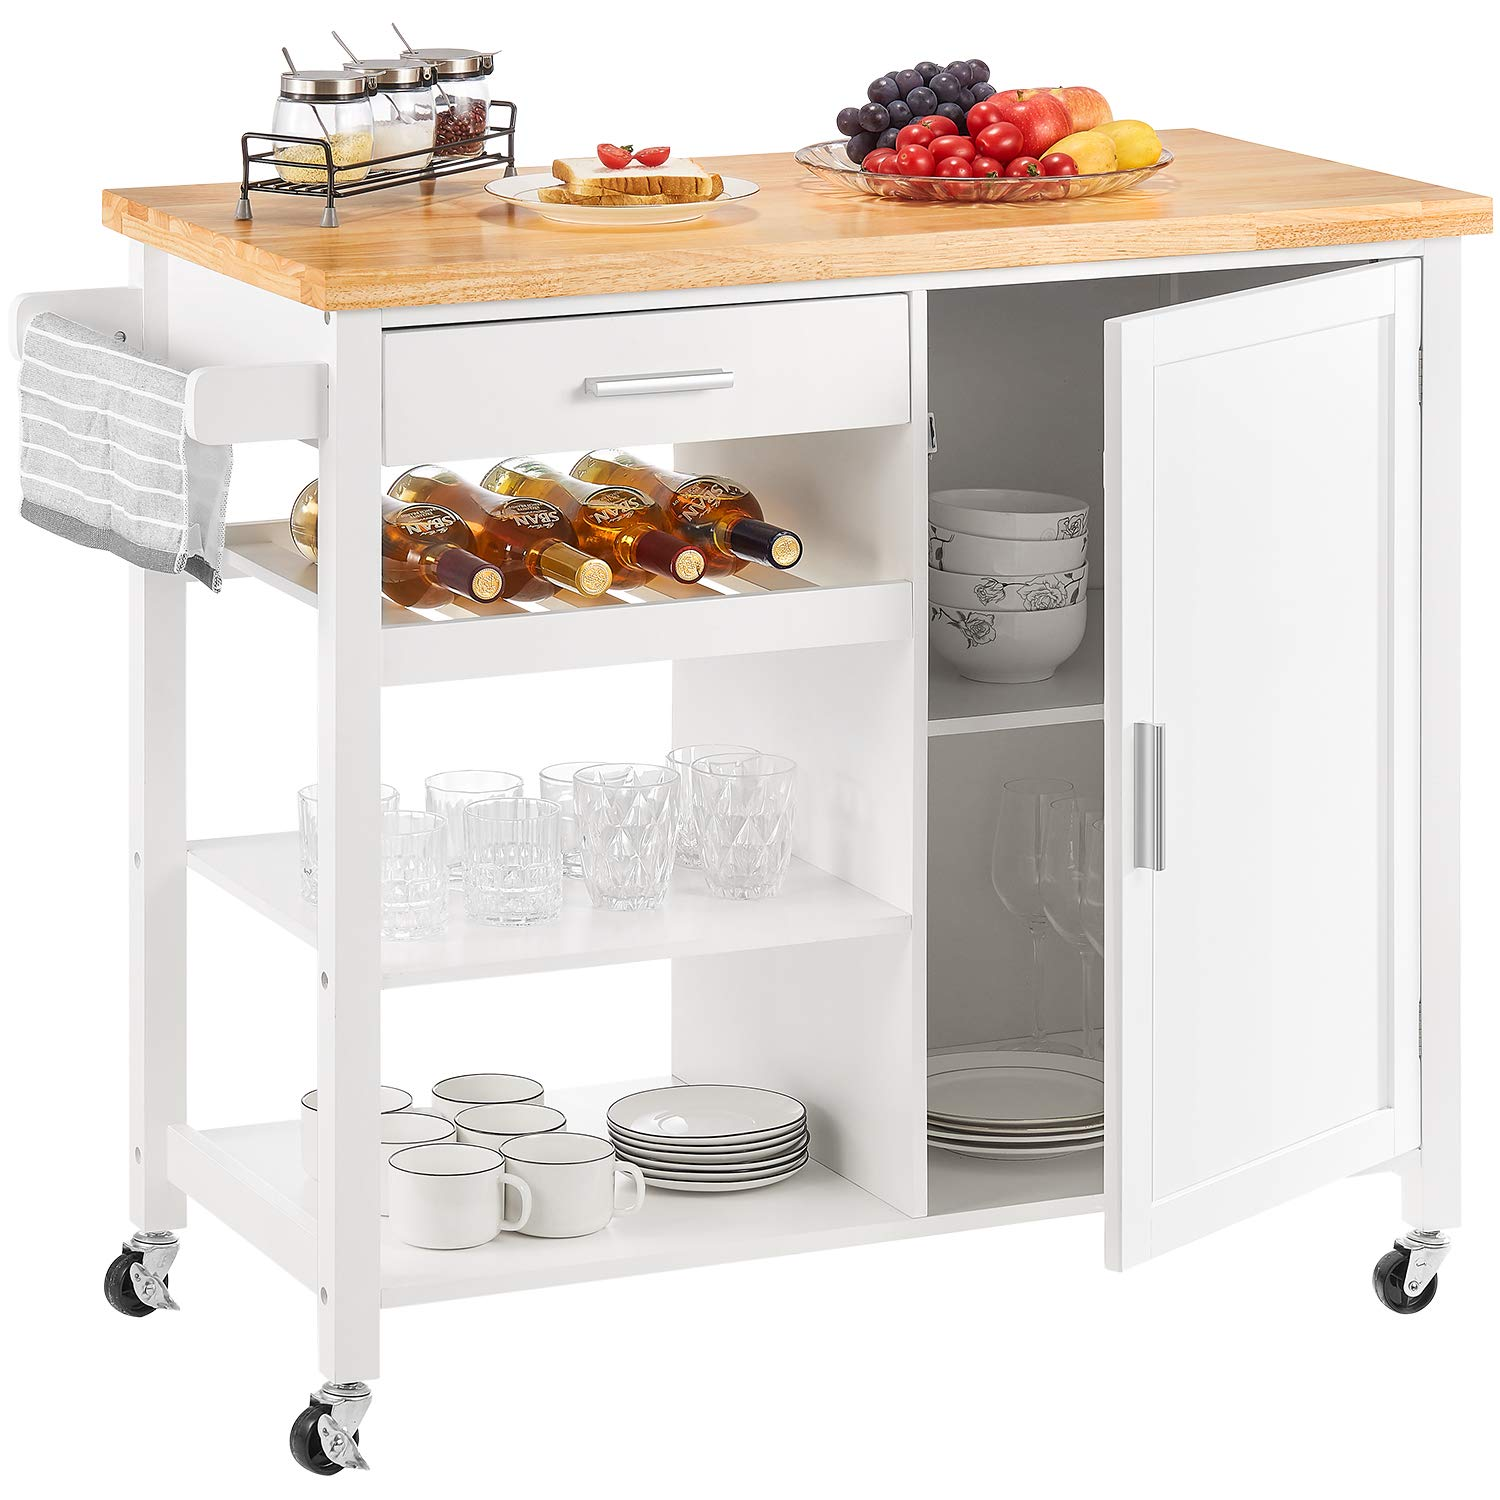 kealive Kitchen Island on Wheels Rolling Kitchen Island with Storage, Wood Top Wine Shelf Handle Rack Cabinet, Home Style, White 41.3L x 18.9W x 35H by kealive